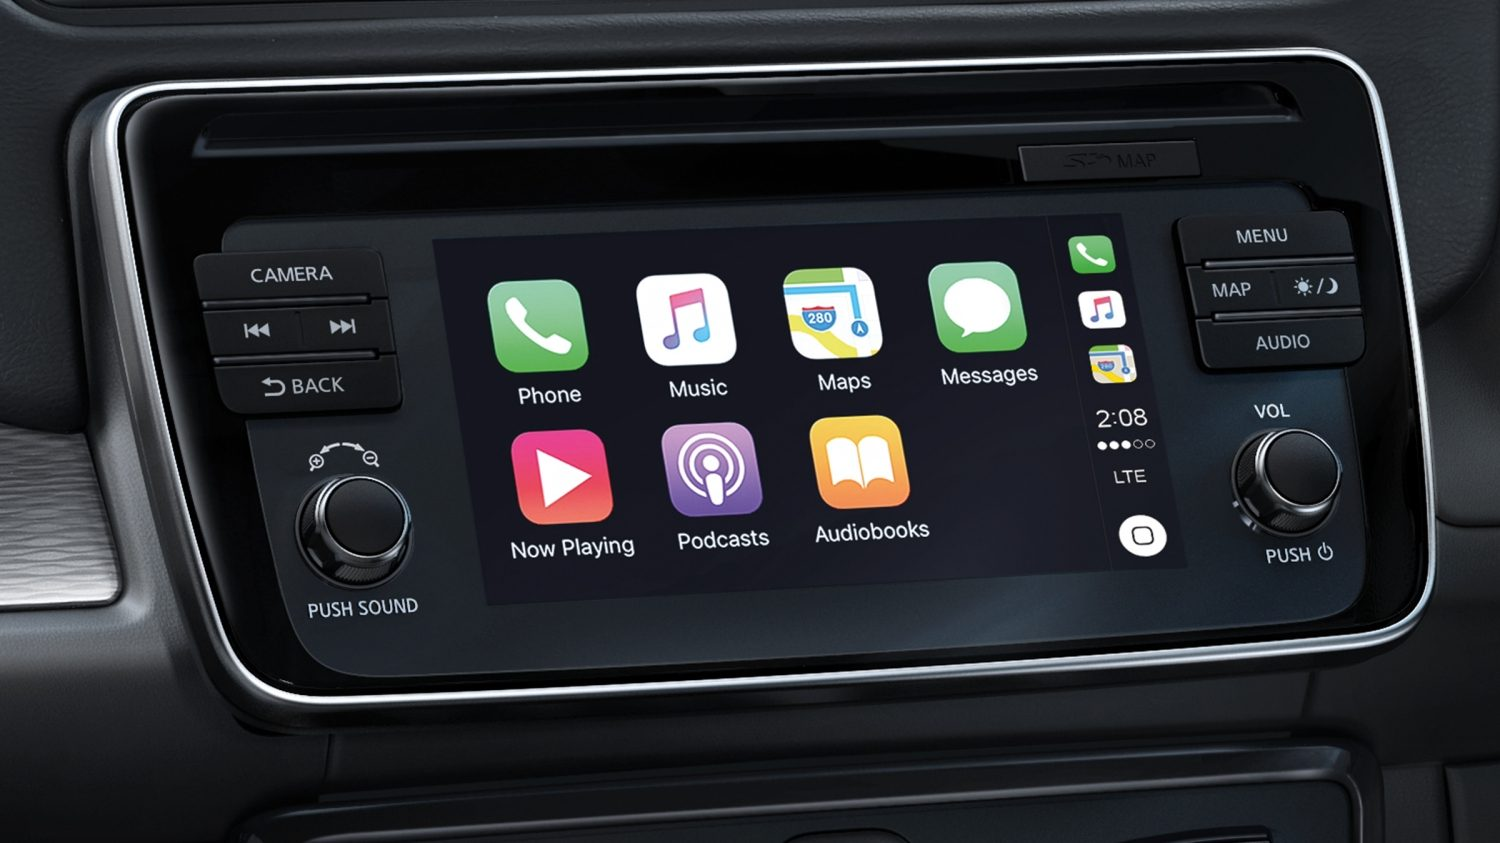 New Nissan LEAF navigation screen showing apple carplay